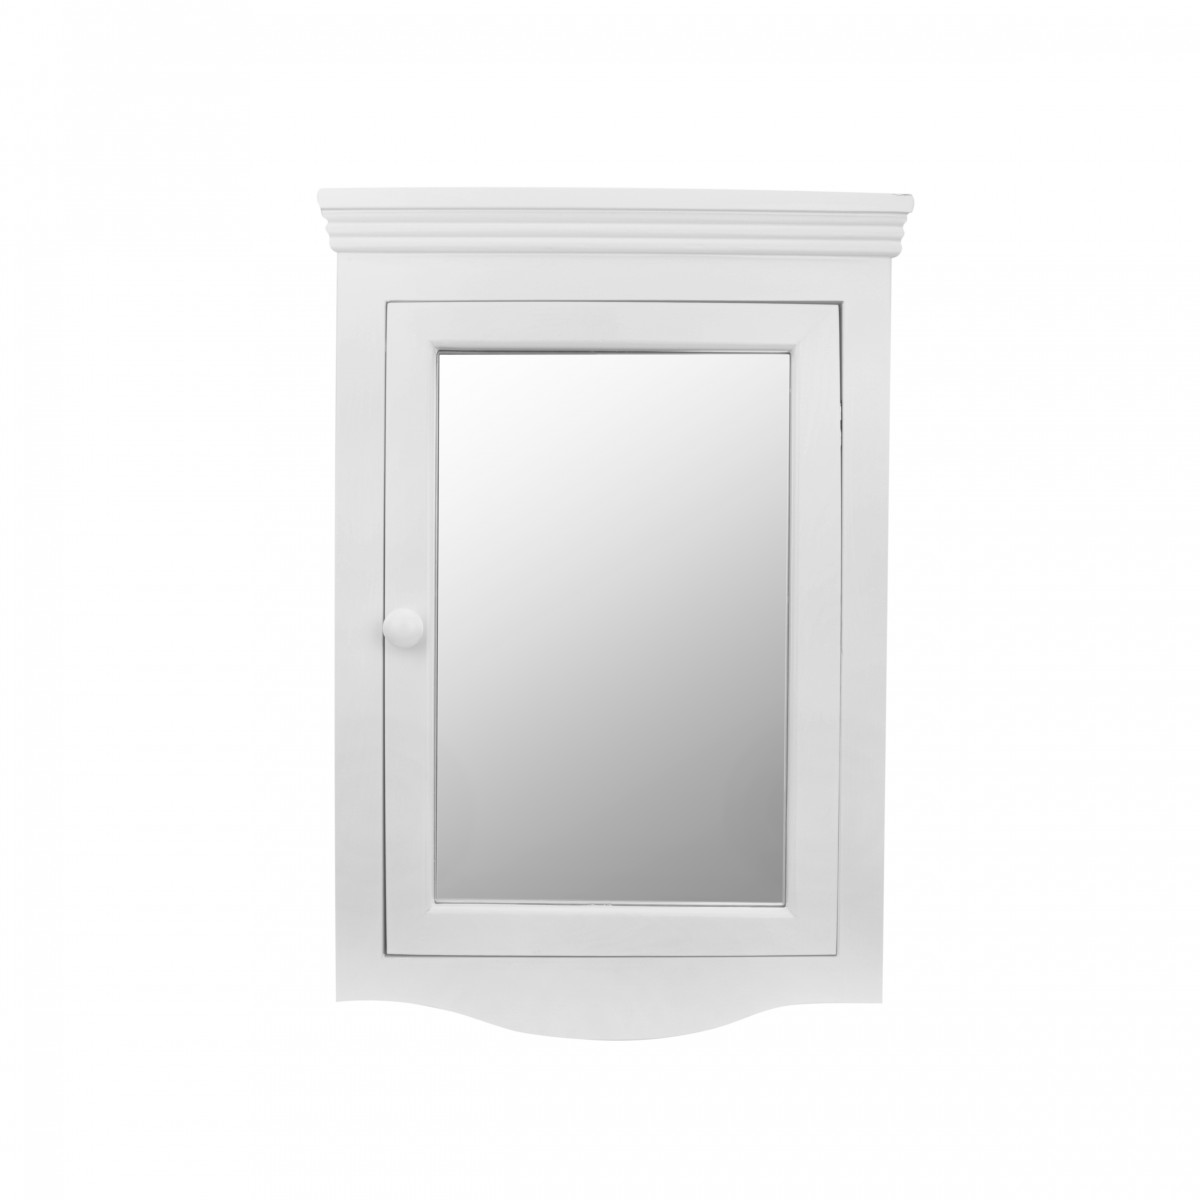 double center stafford ariel white sink products in vanity cabinet w medicine productimage set wht